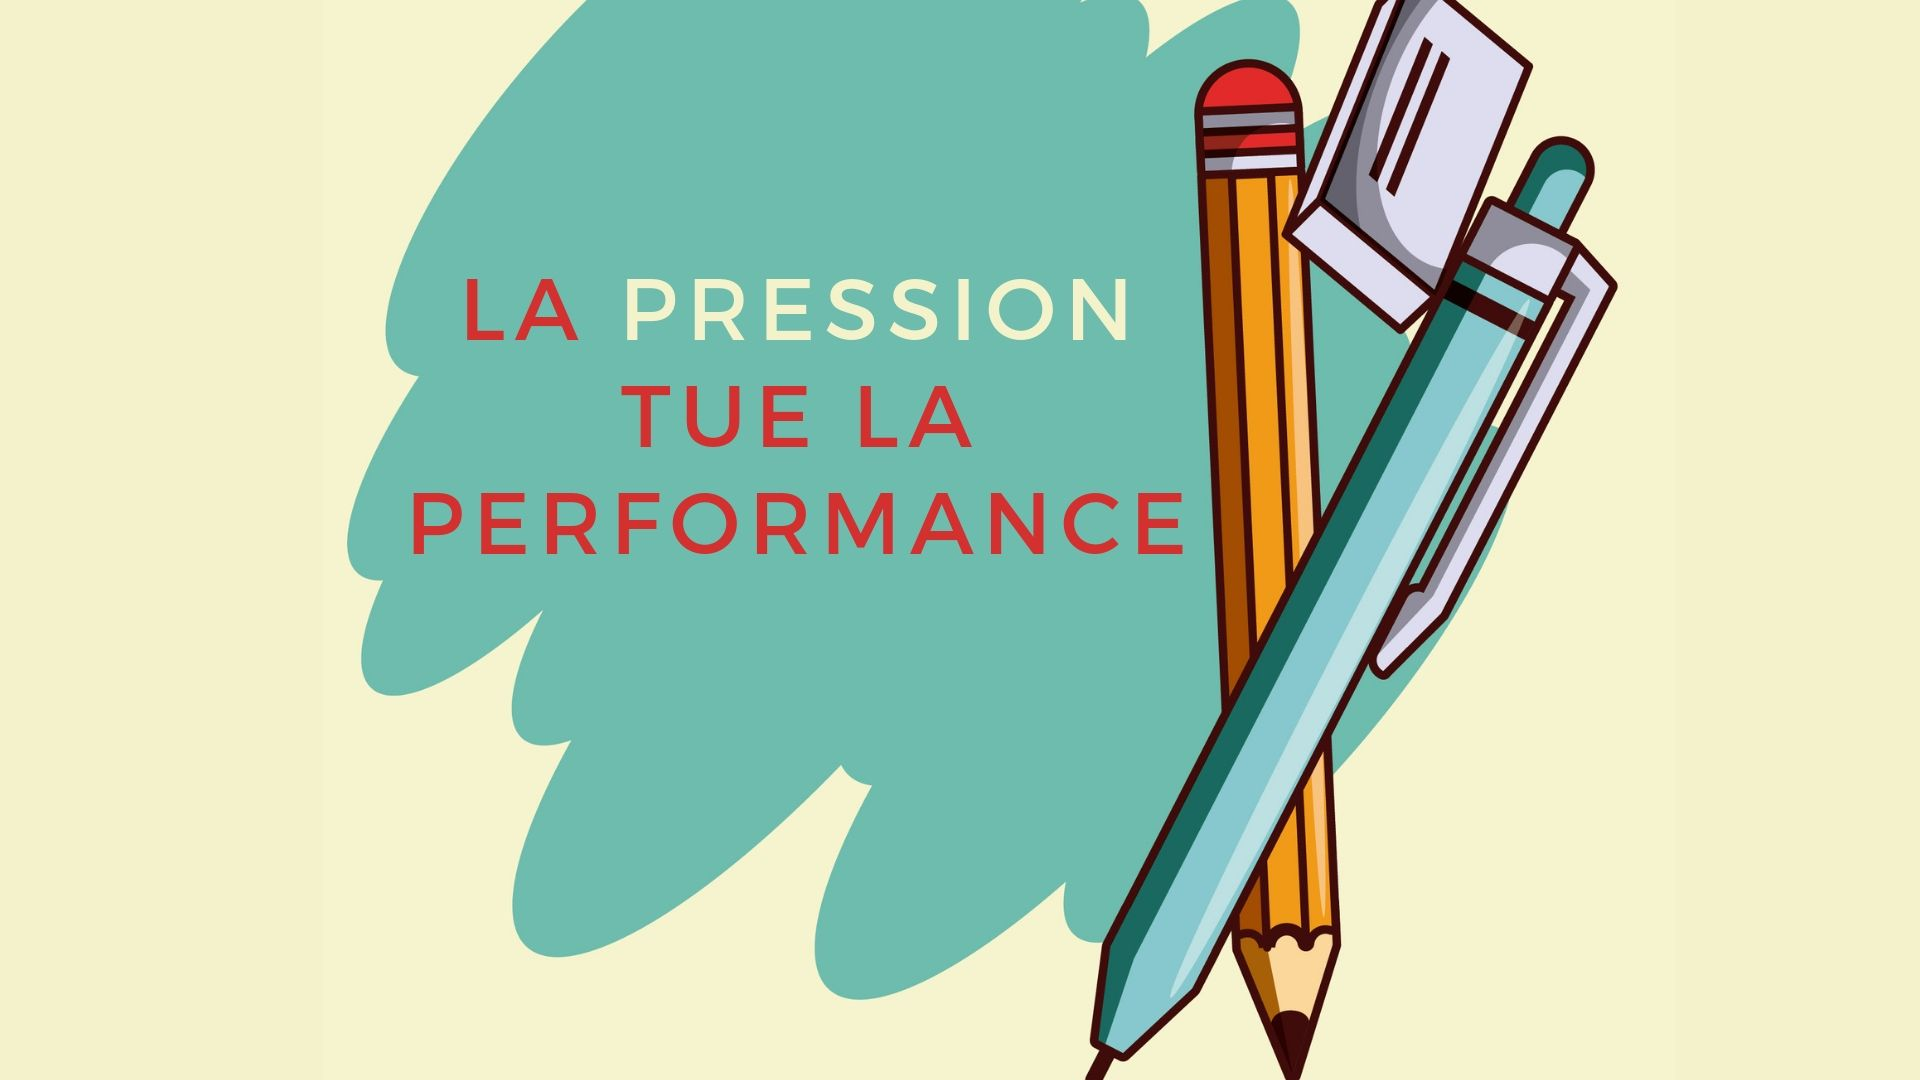 La pression tue la performance